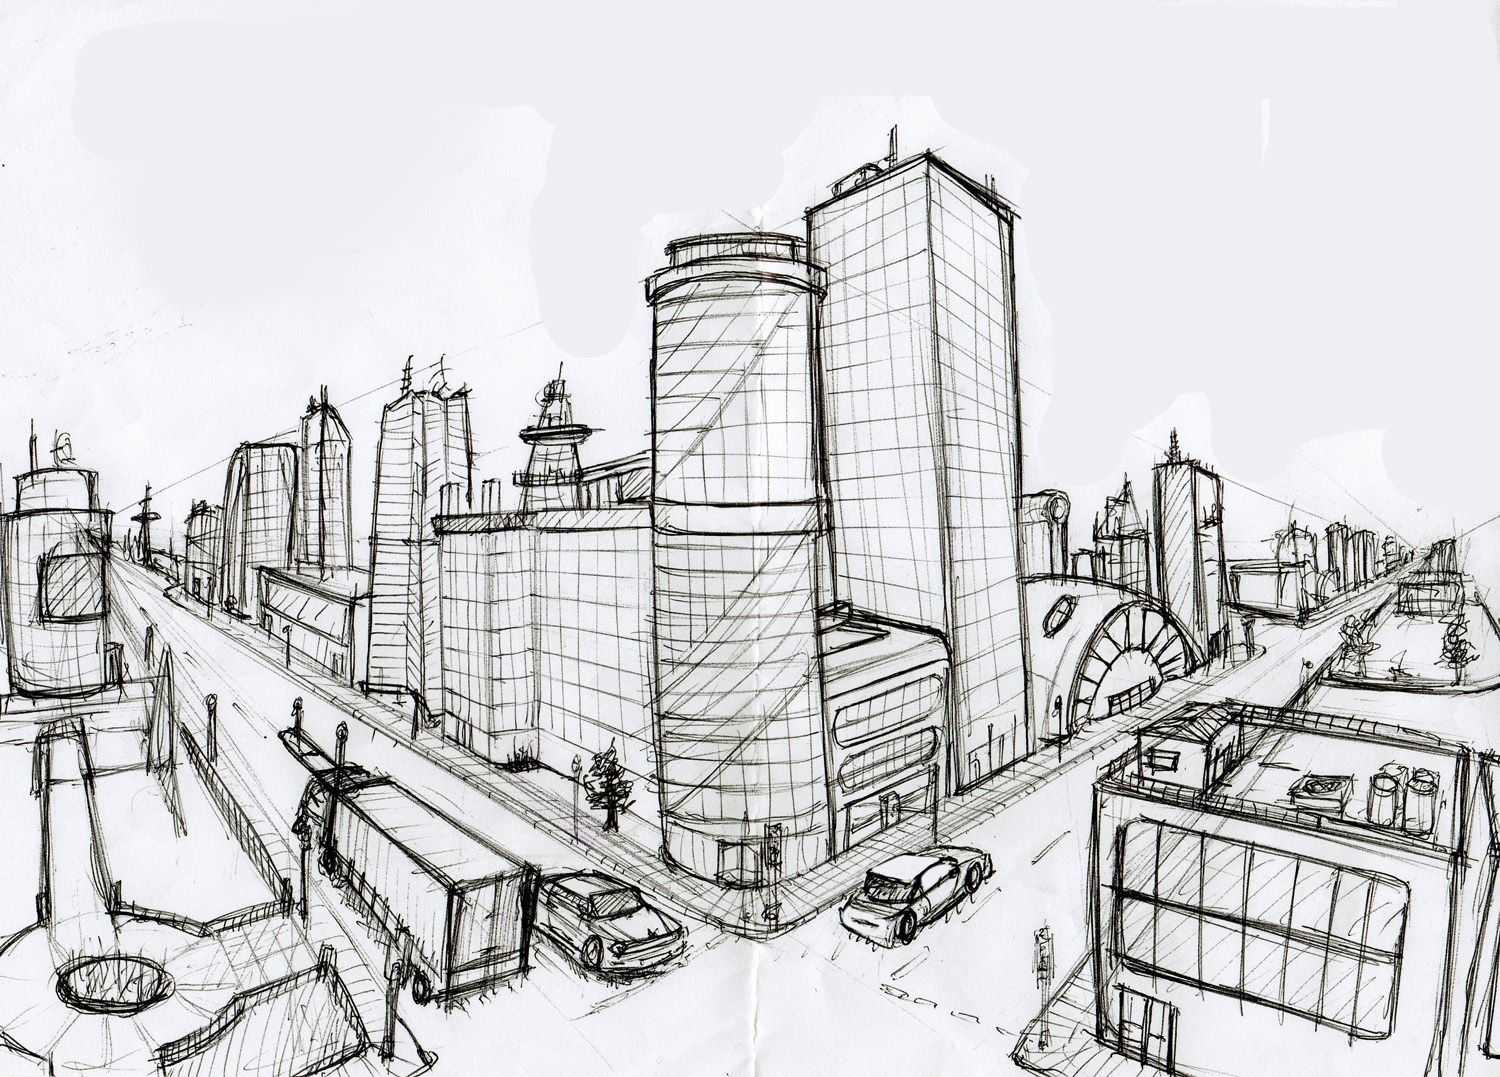 Dessin Immeuble En Perspective Two Point Perspective Cityscape Easy 2 Point P Perspective